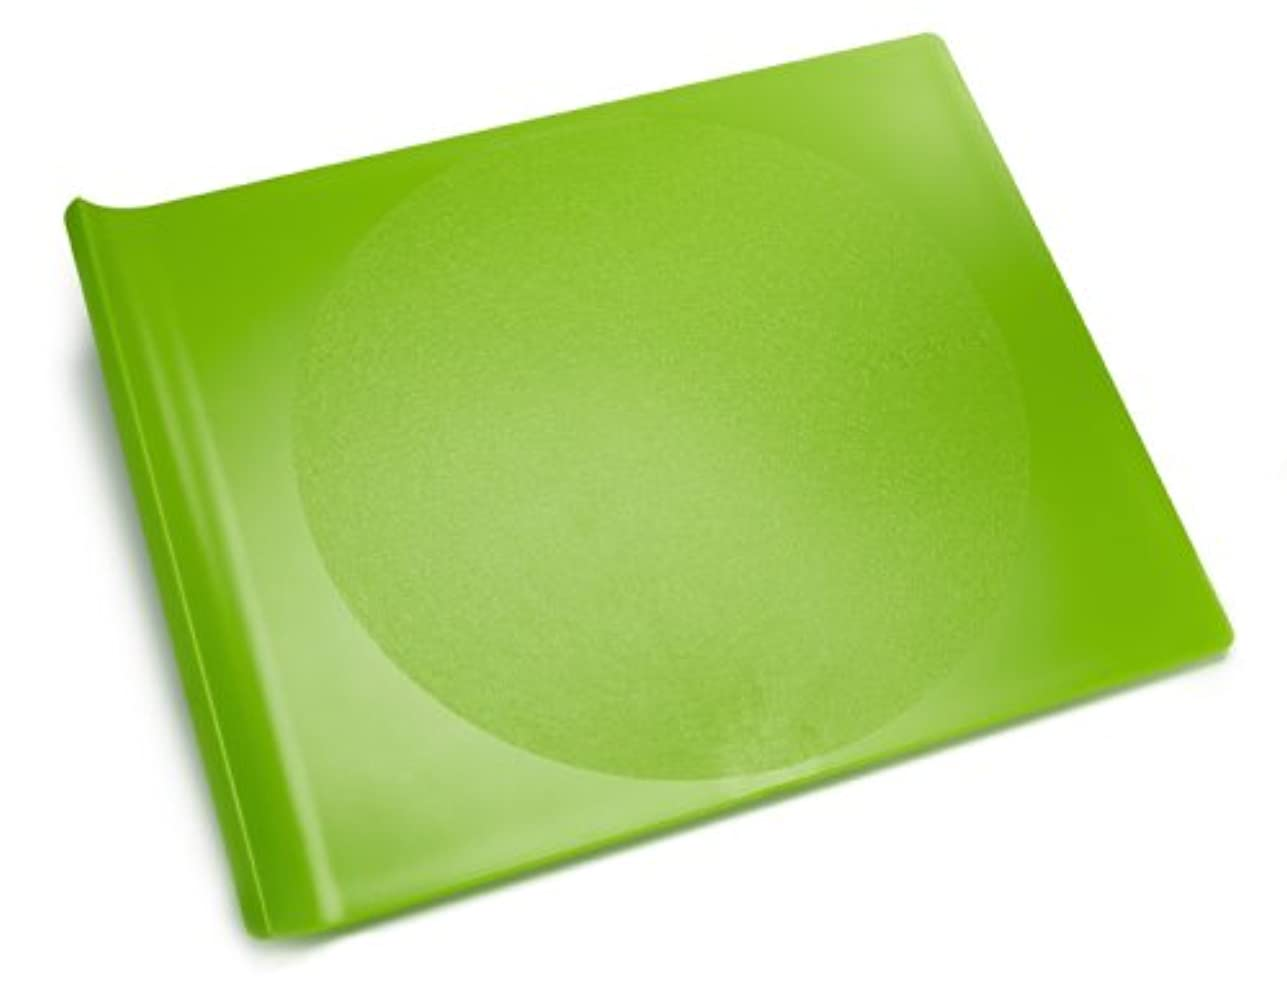 飼料変形する相対サイズ海外直送品Cutting Board Plastic, Large Apple Green 1 CT by Preserve